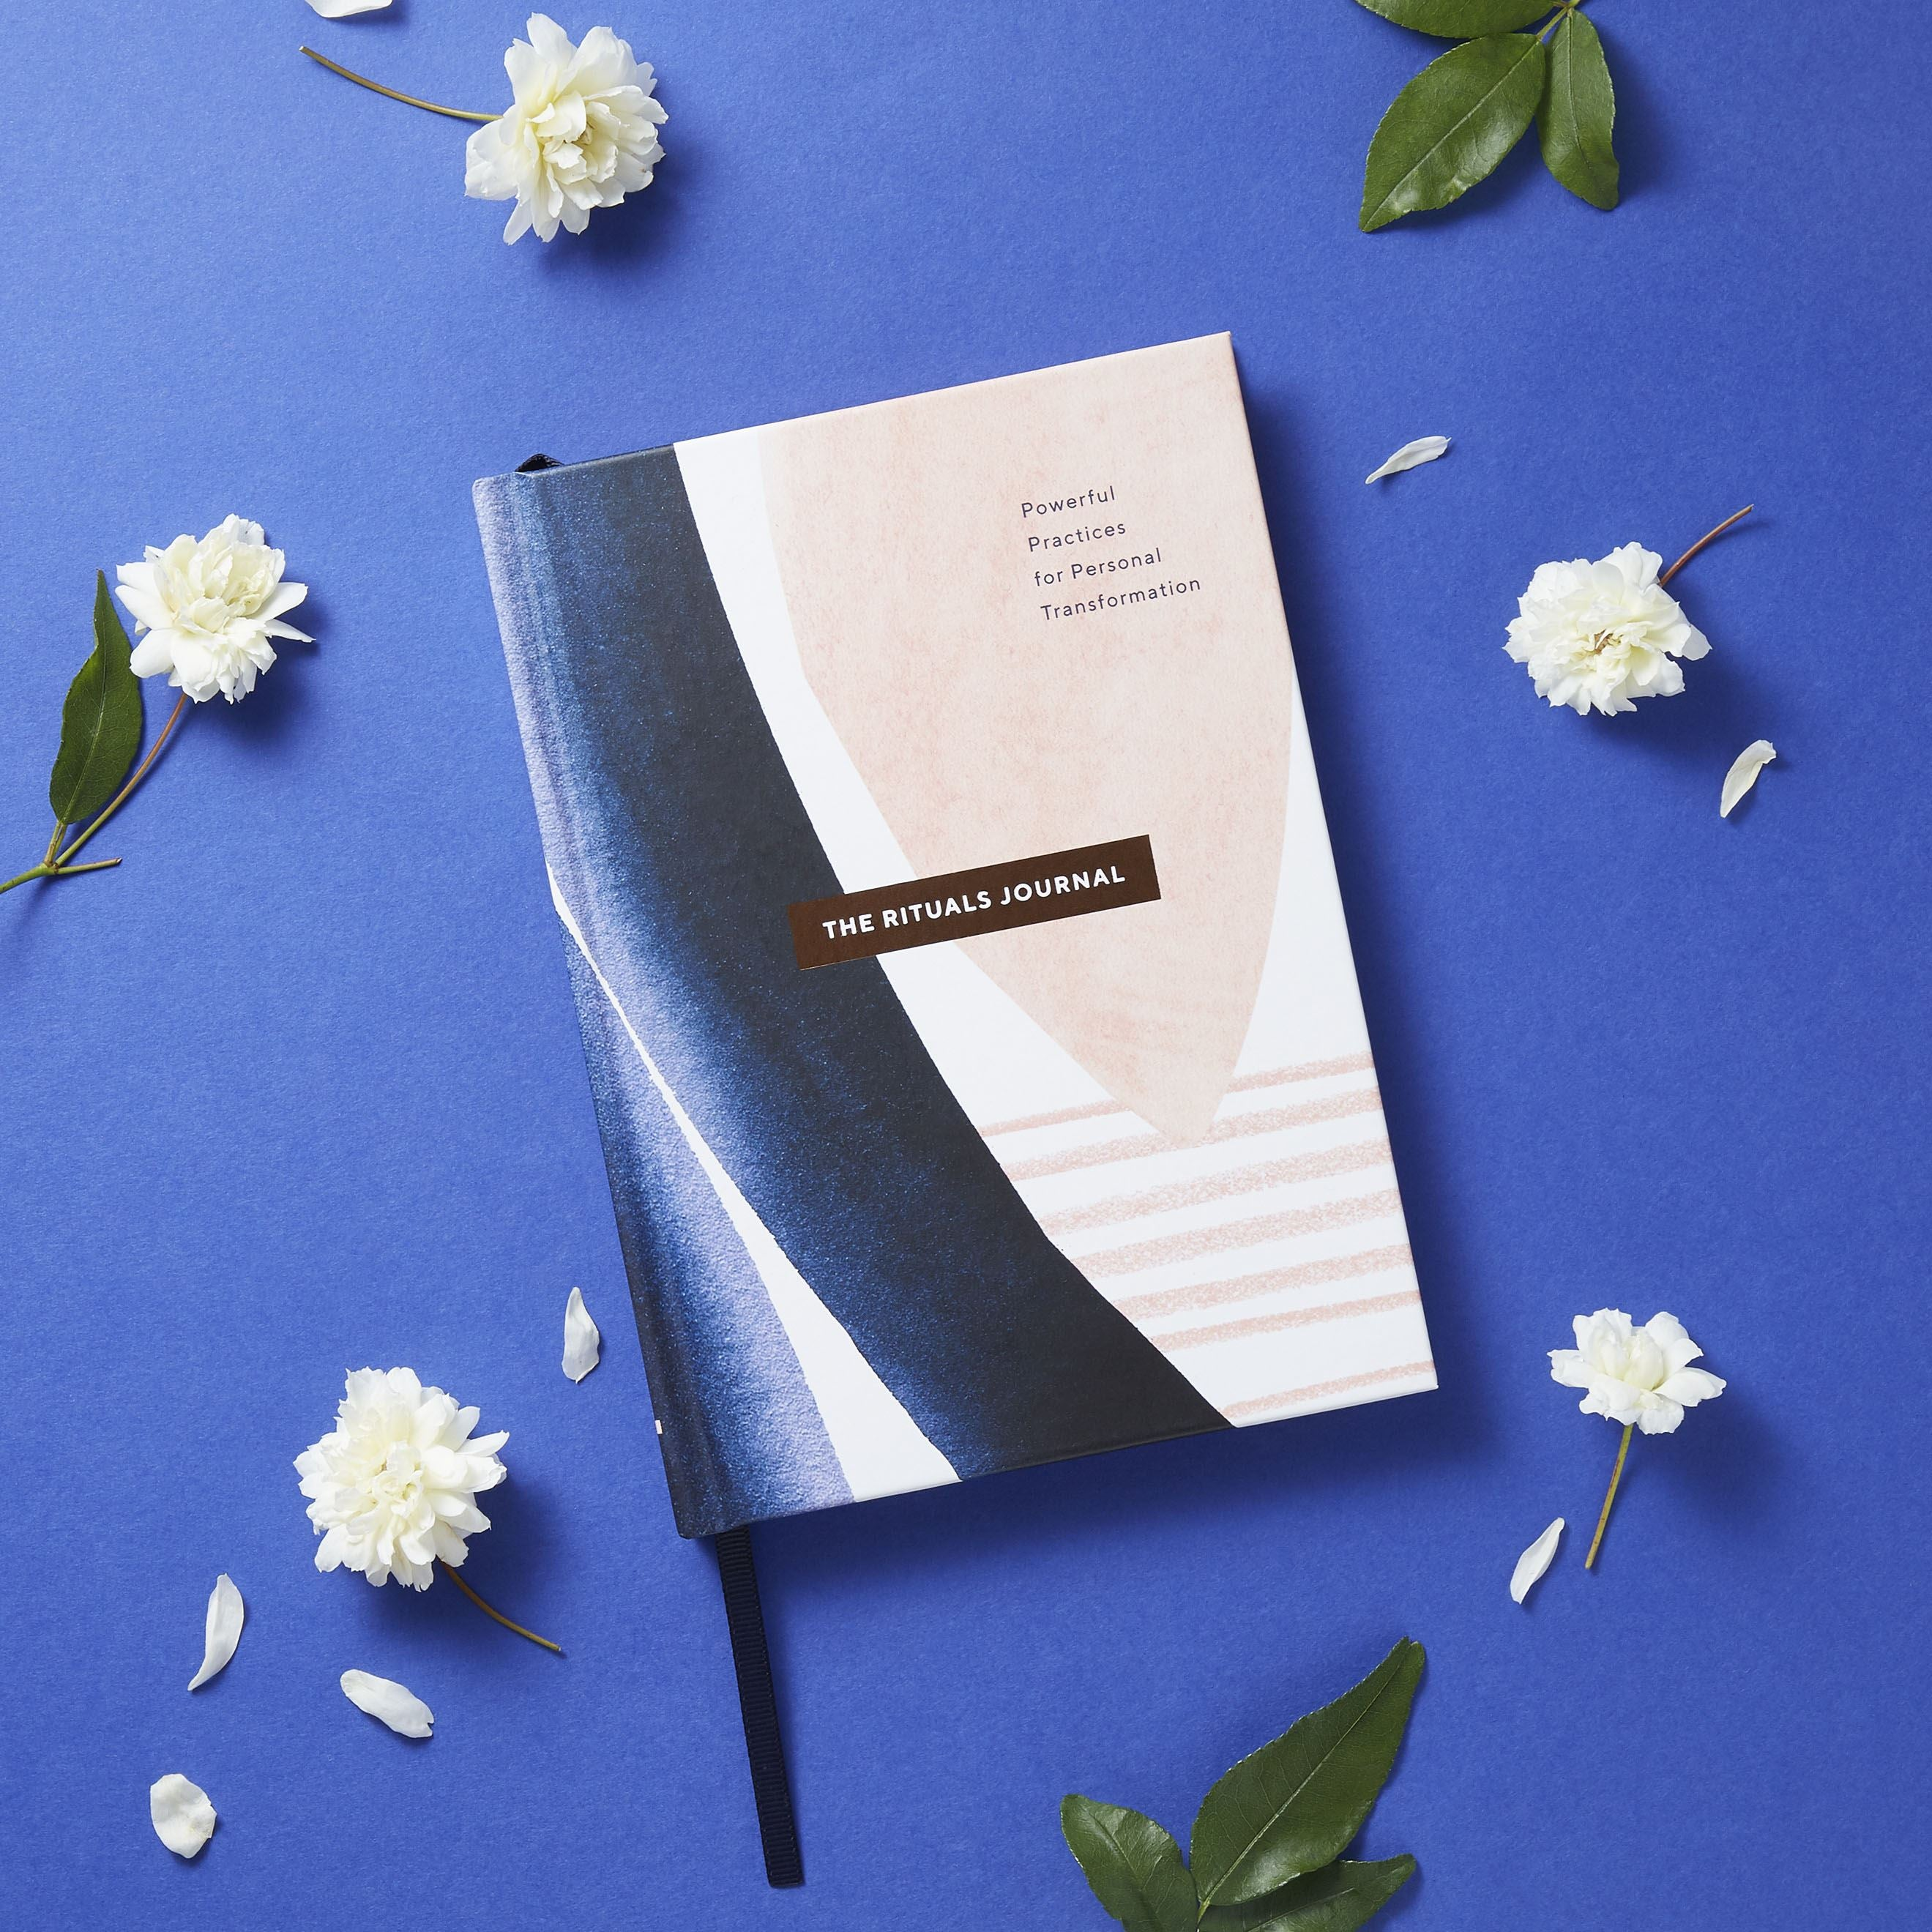 THE RITUALS JOURNAL BY NATALIE MACNEIL